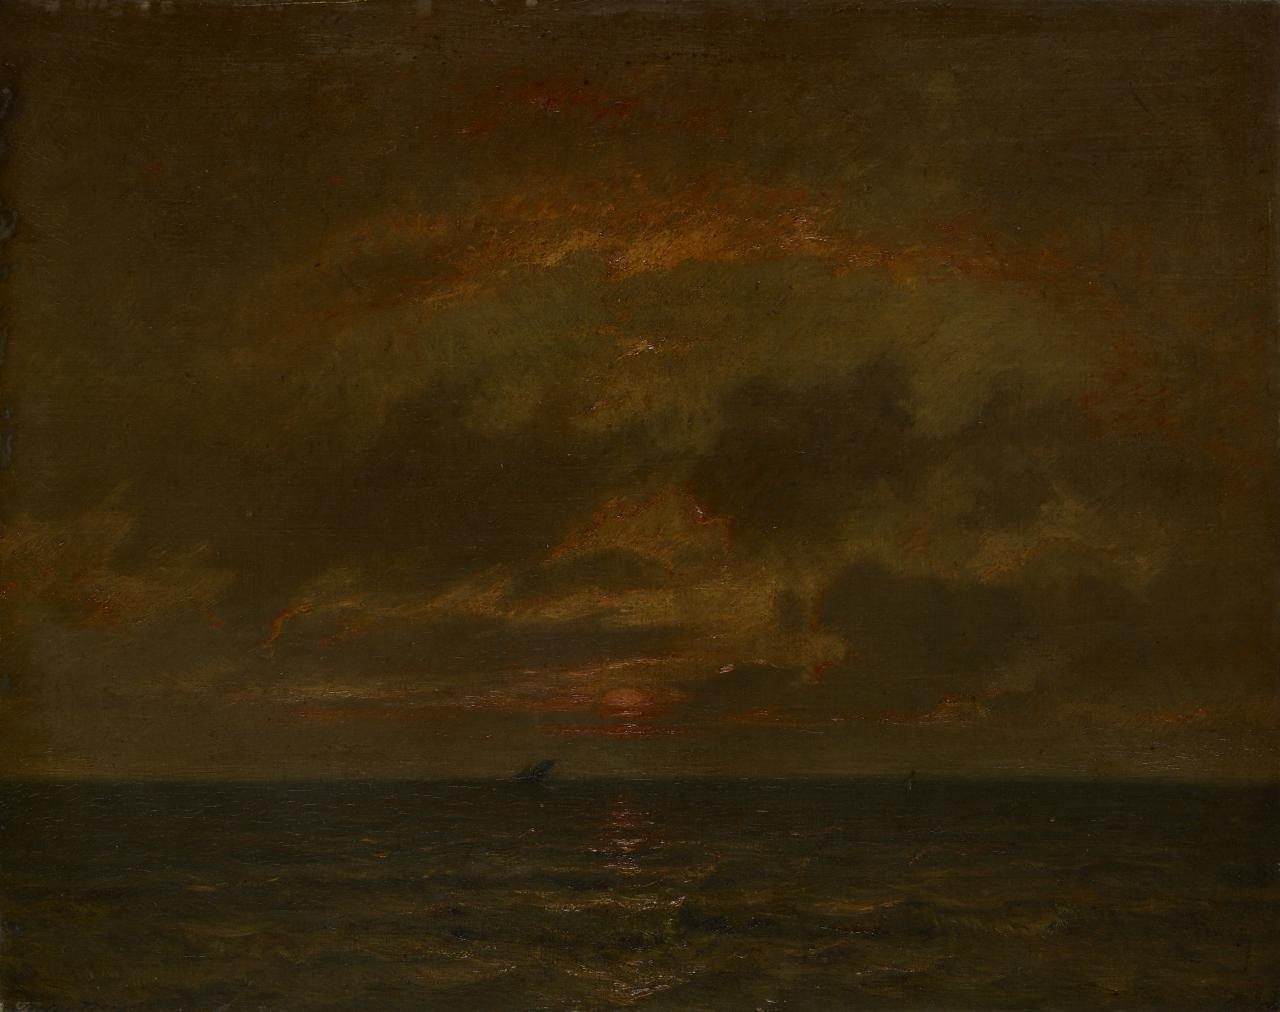 Seascape, marine view